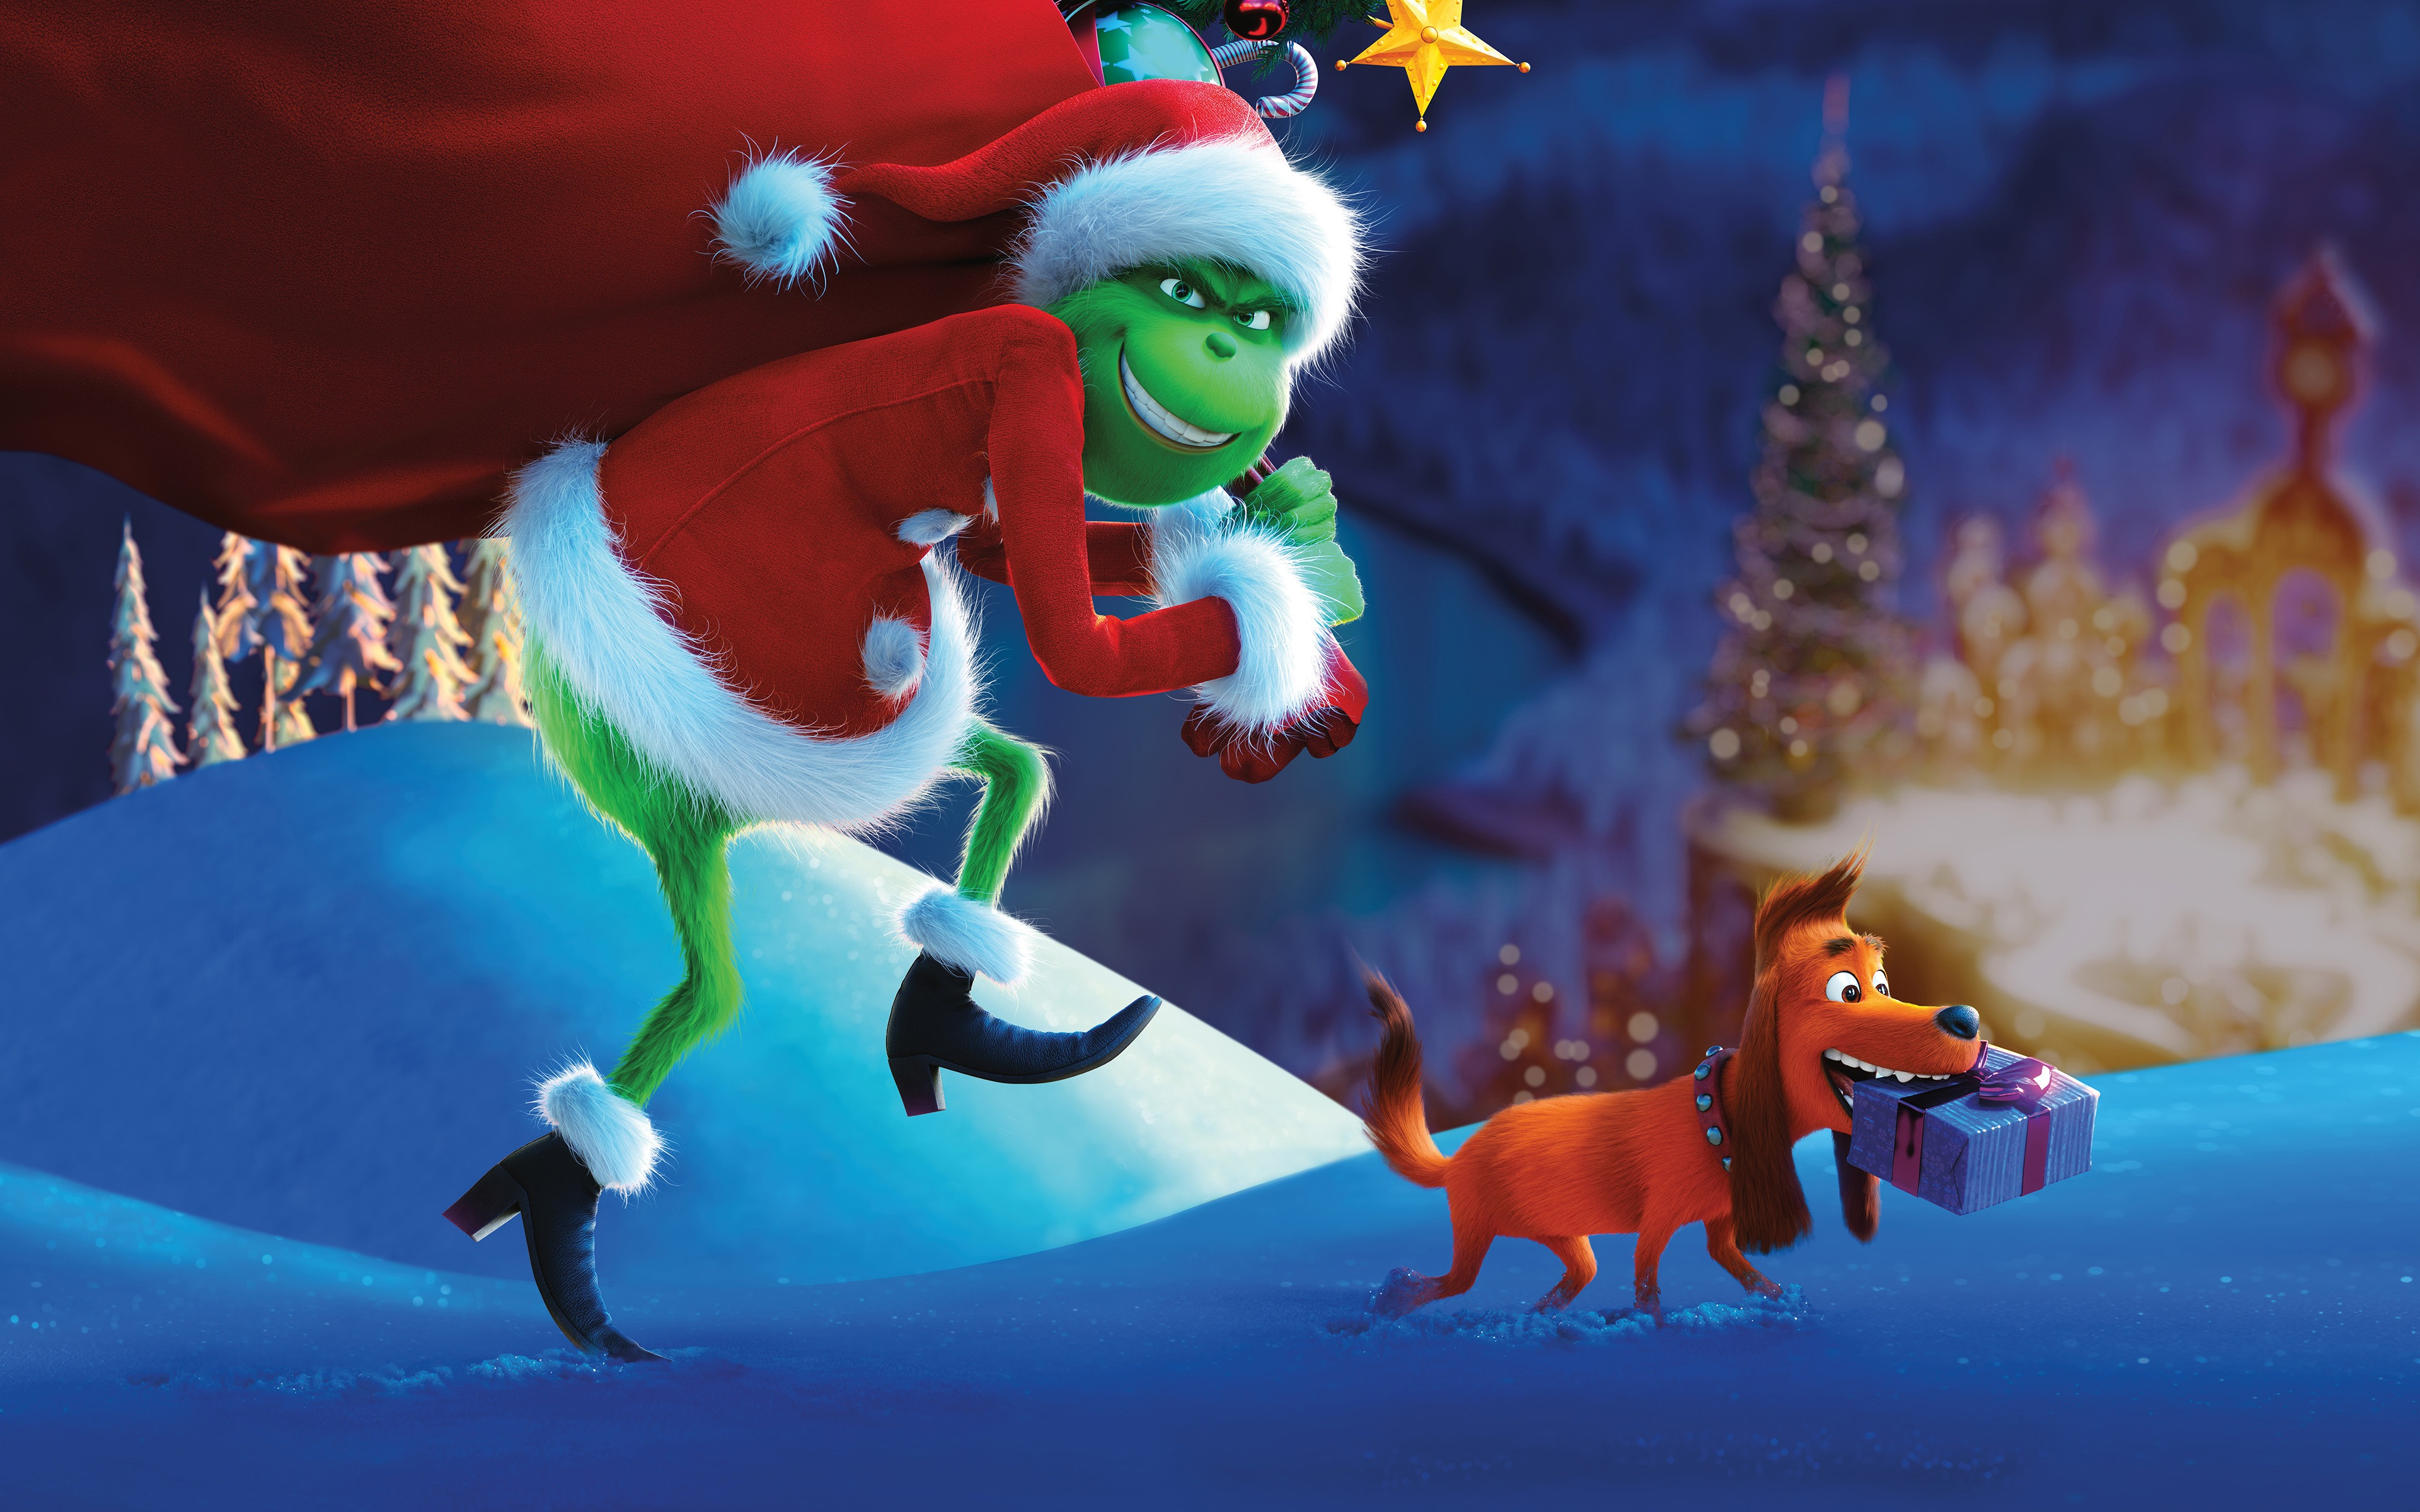 The Grinch 2018 New Animated Christmas Movie Wallpaper 4K